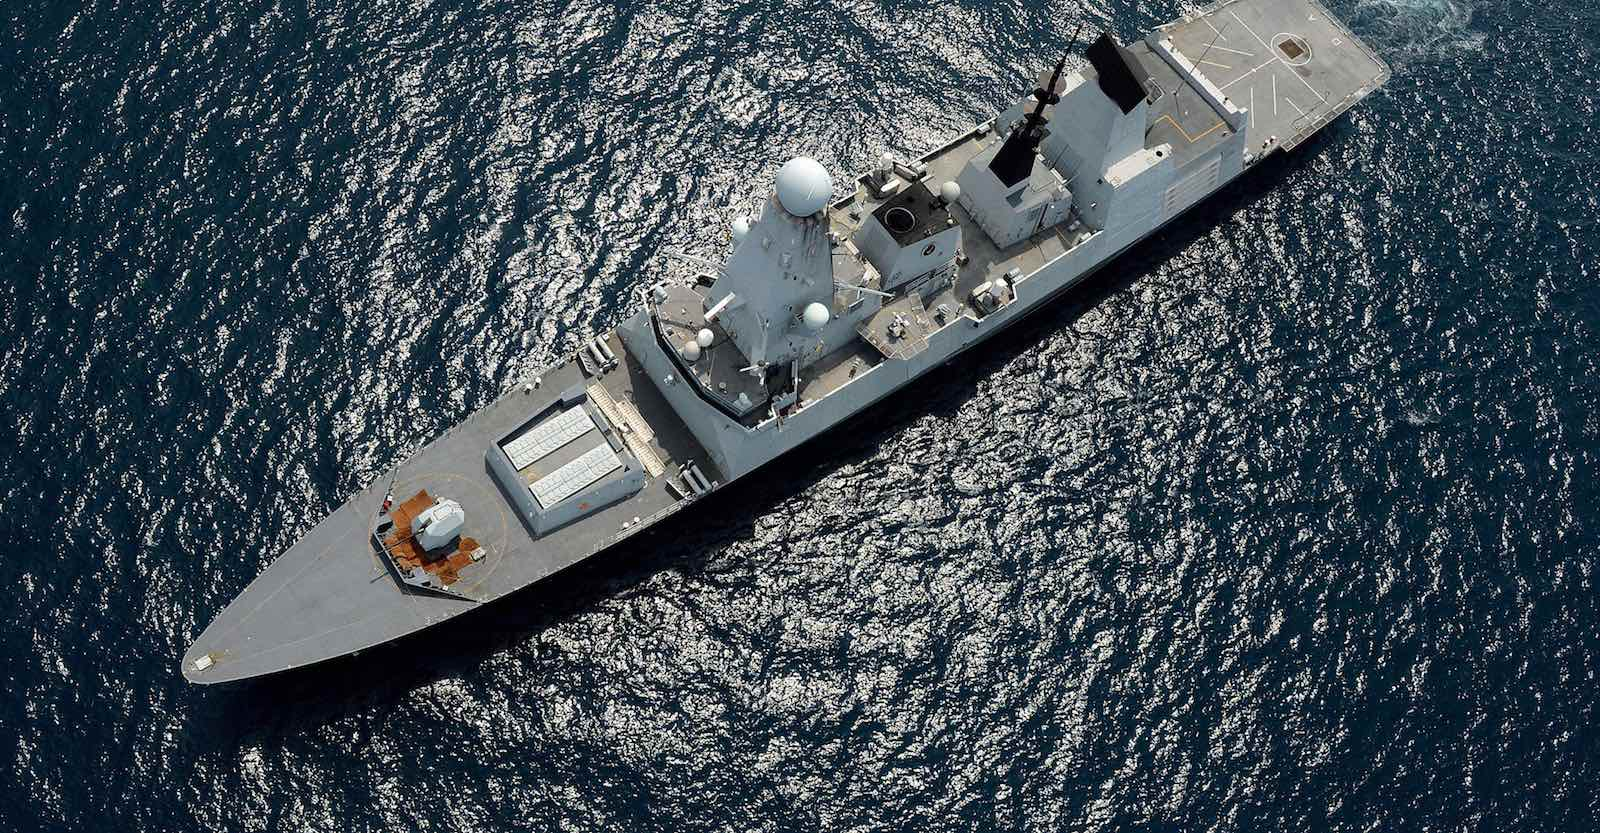 Royal Navy warship HMS Daring during relief efforts in the Philippines after Typhoon Haiyan in 2013 (Photo: UK Ministry of Defence)